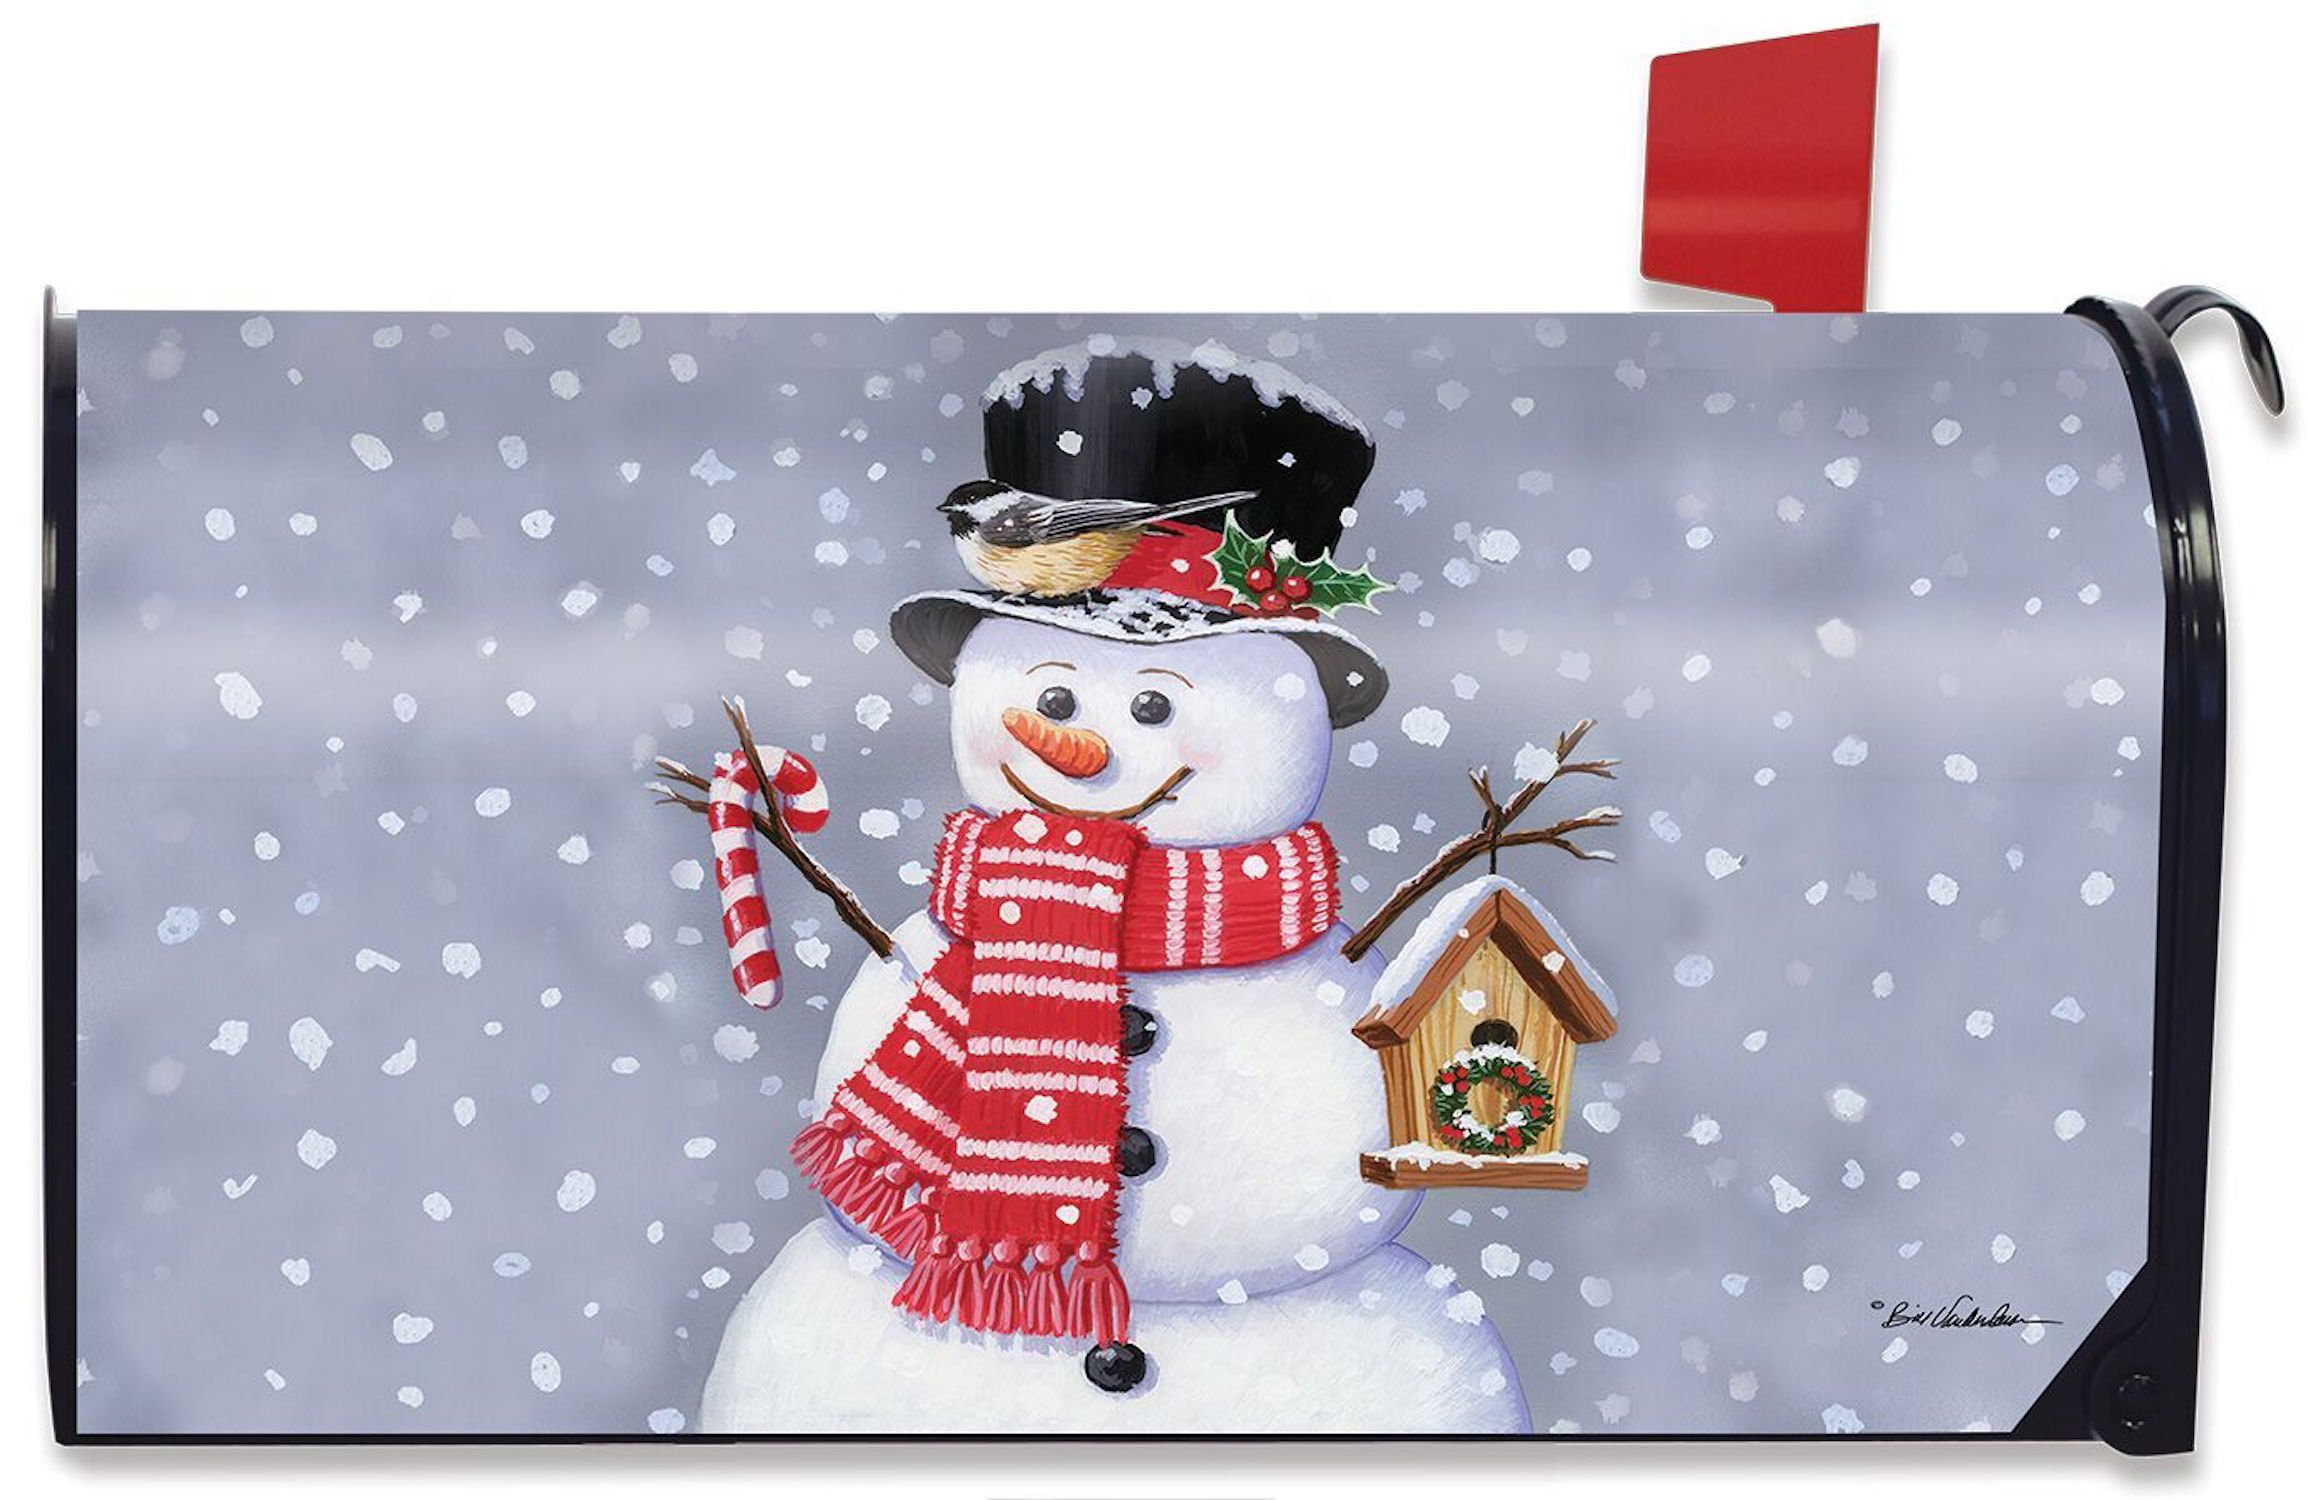 Briarwood Lane Snowman Birdhouse Magnetic Mailbox Cover Christmas Candy Cane